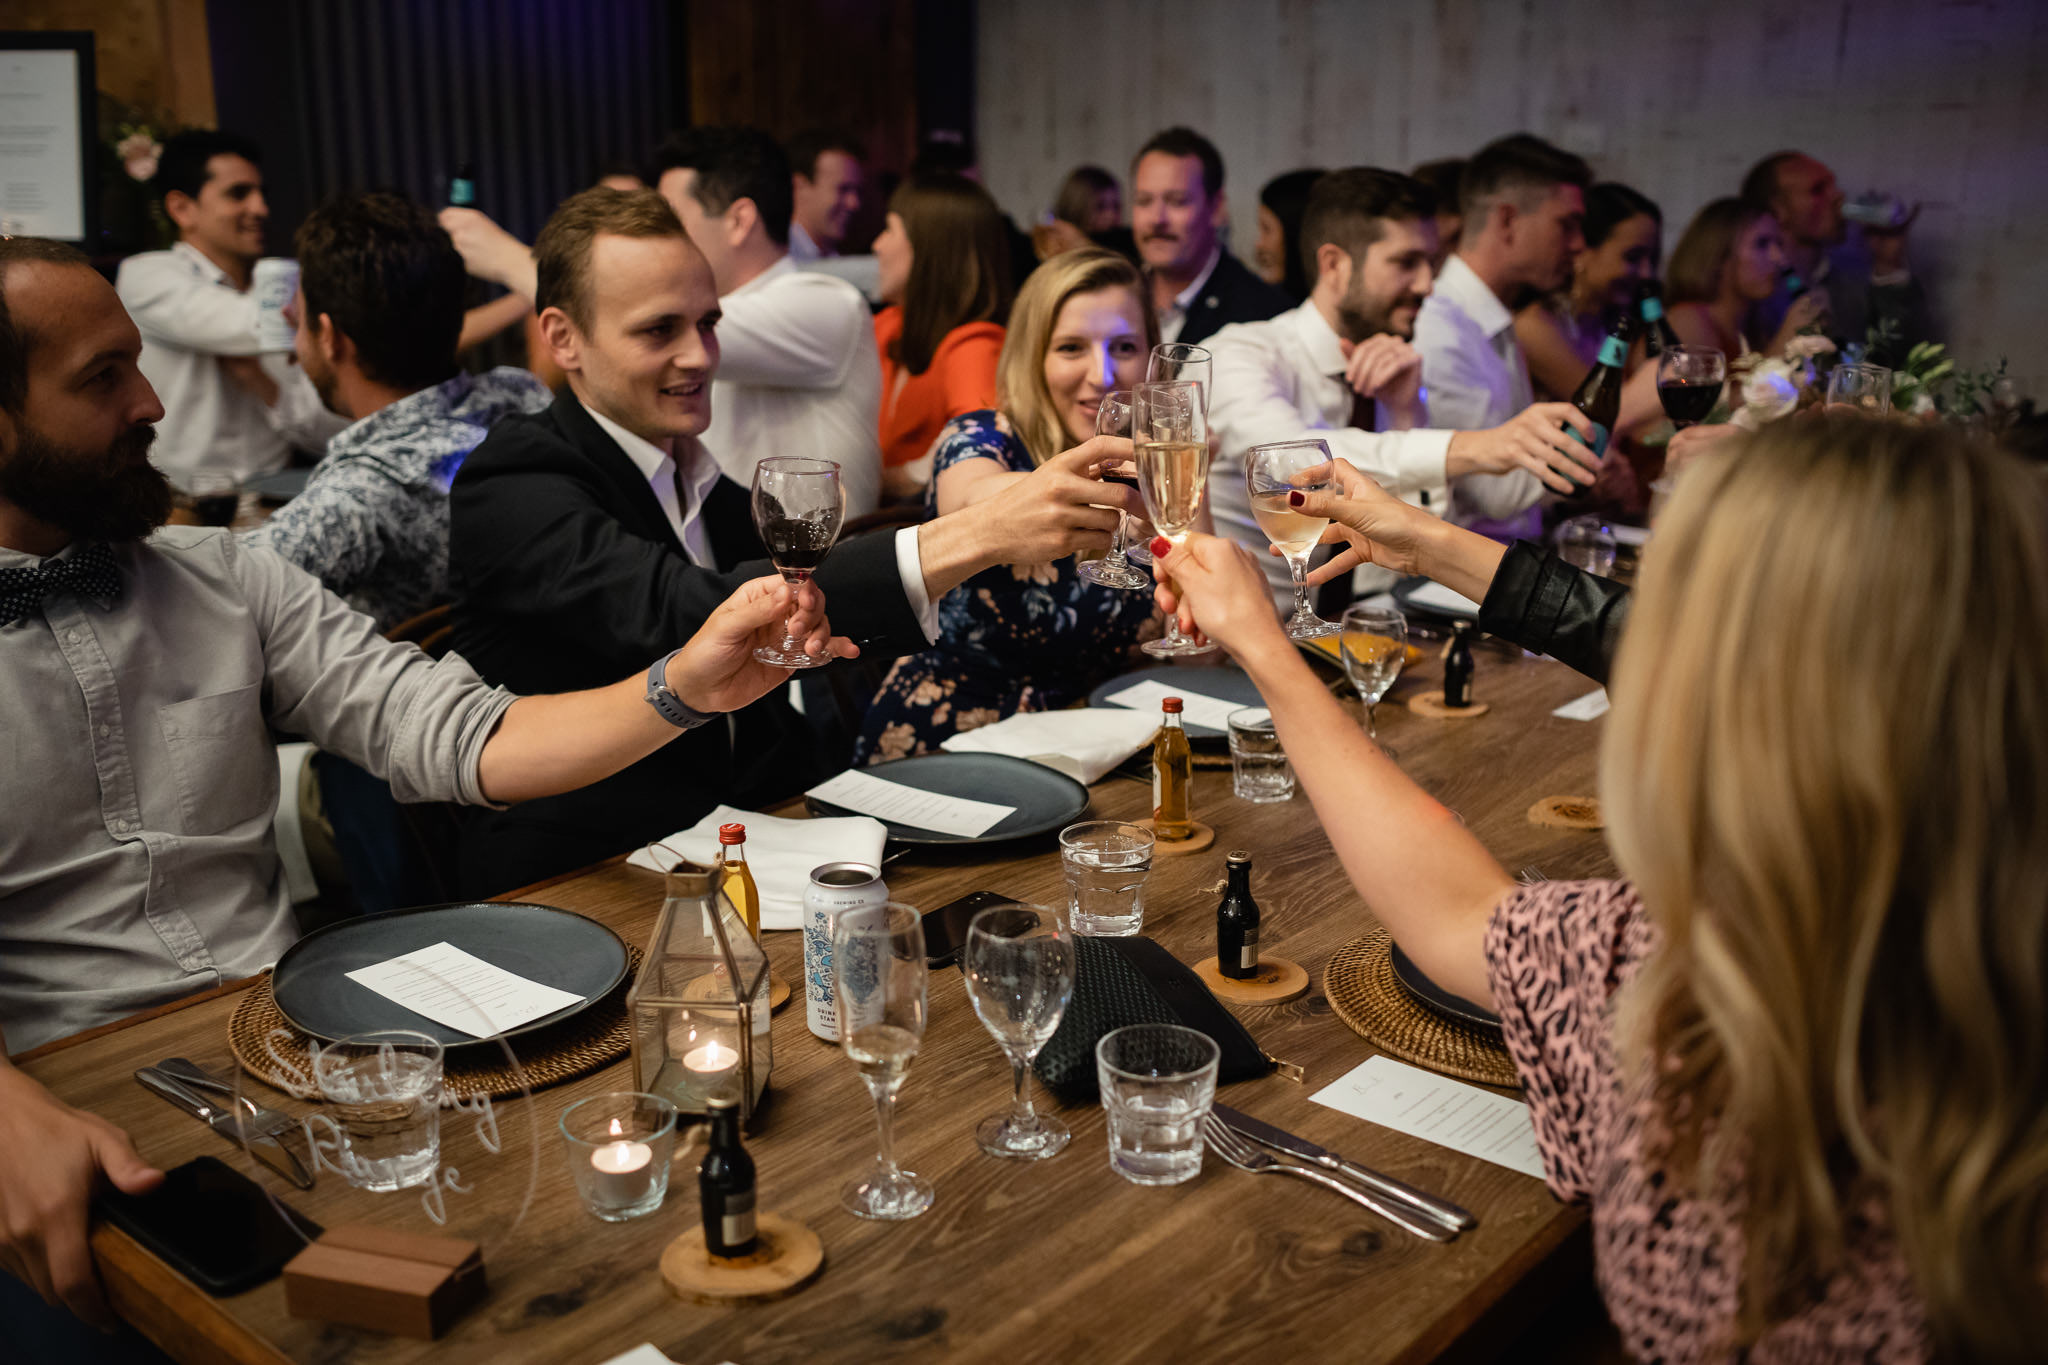 Guests clinking glasses during wedding toast at wedding reception